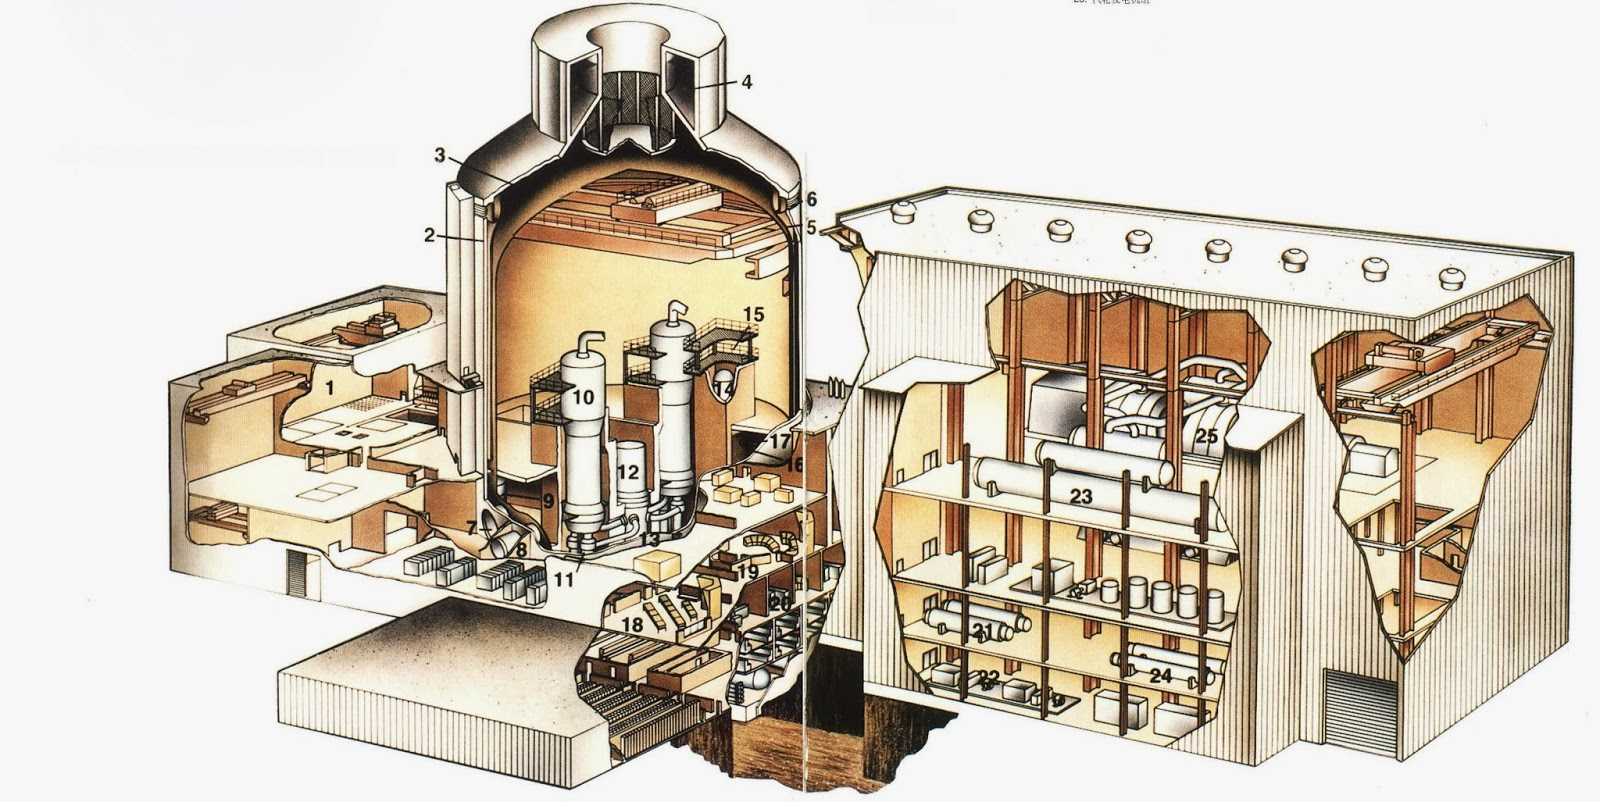 Advanced pressurized water reactor nuclear power plant general layout